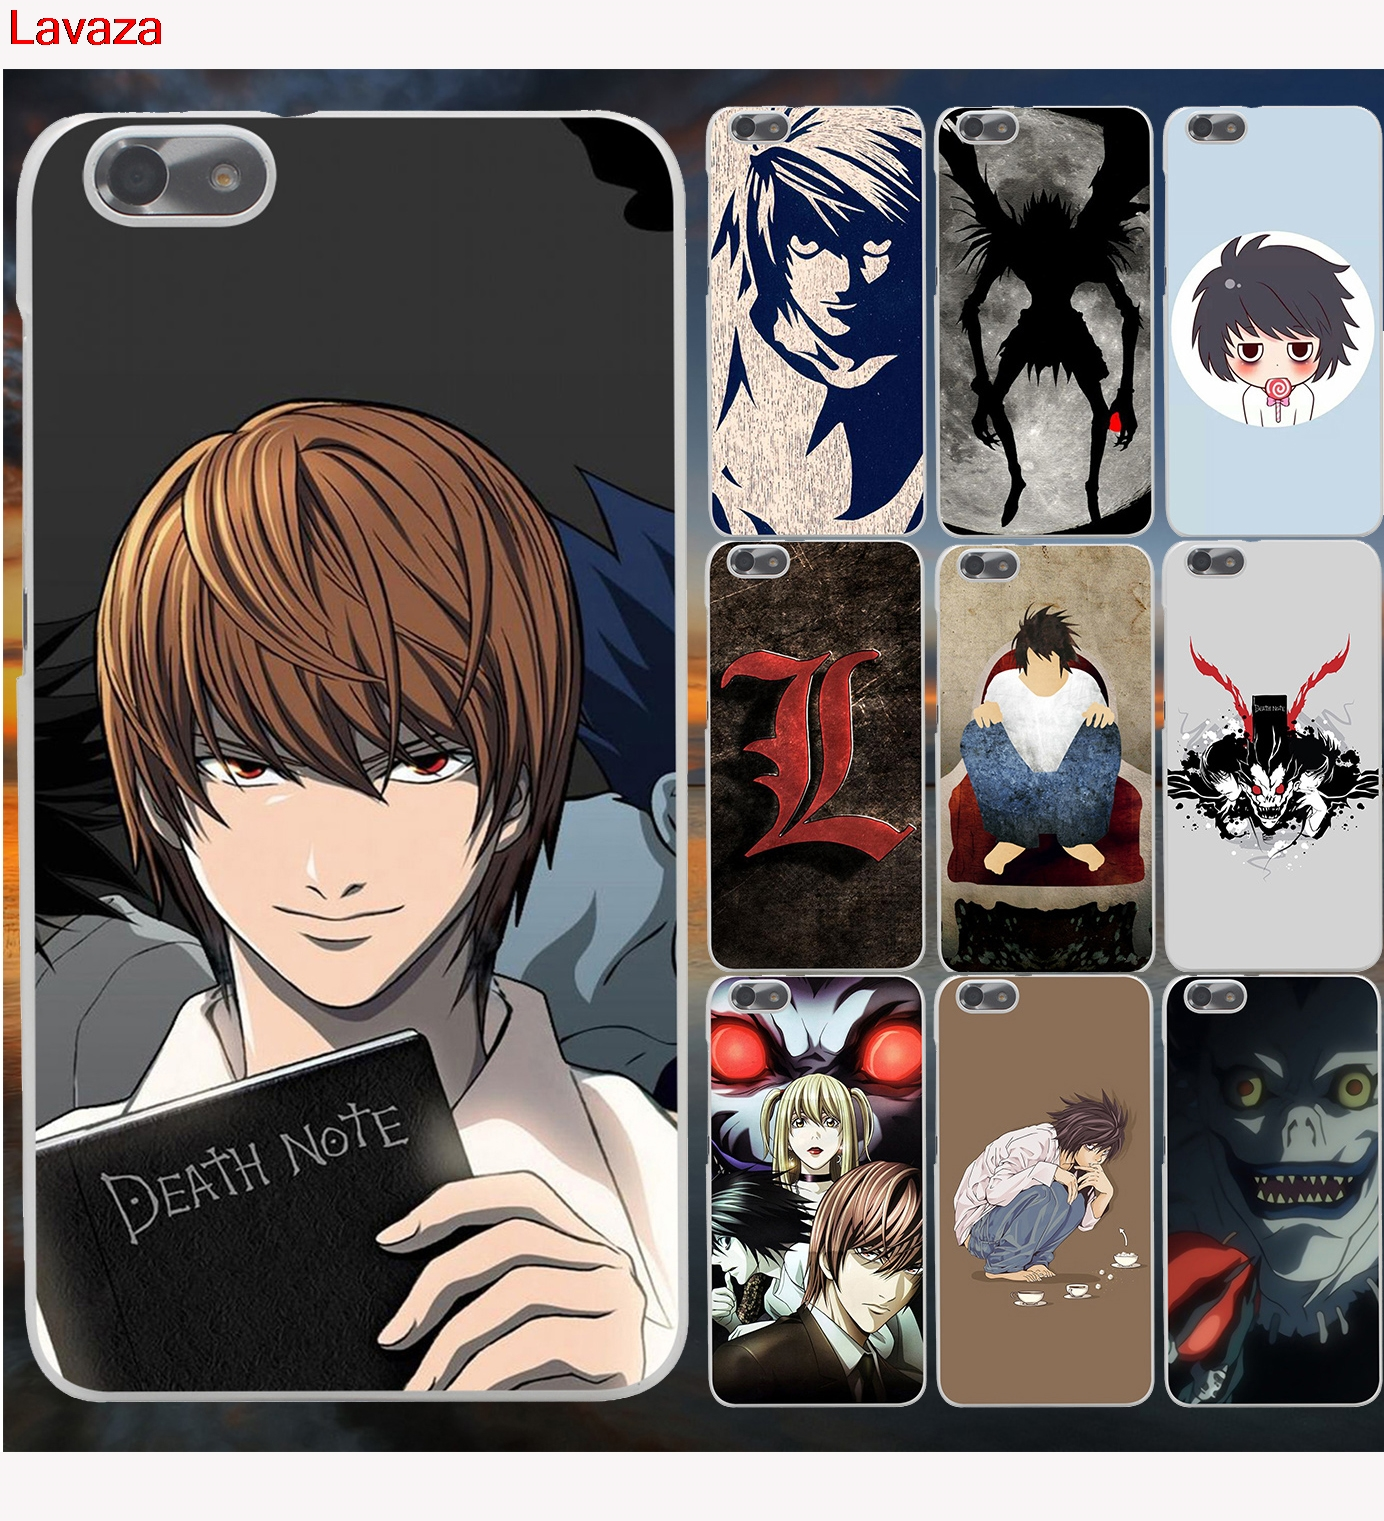 Lavaza Anime Death Note Hard Phone Case for Huawei P10 P8 P9 Lite ( 2015 2016 2017 ) Plus Honor 9 Lite